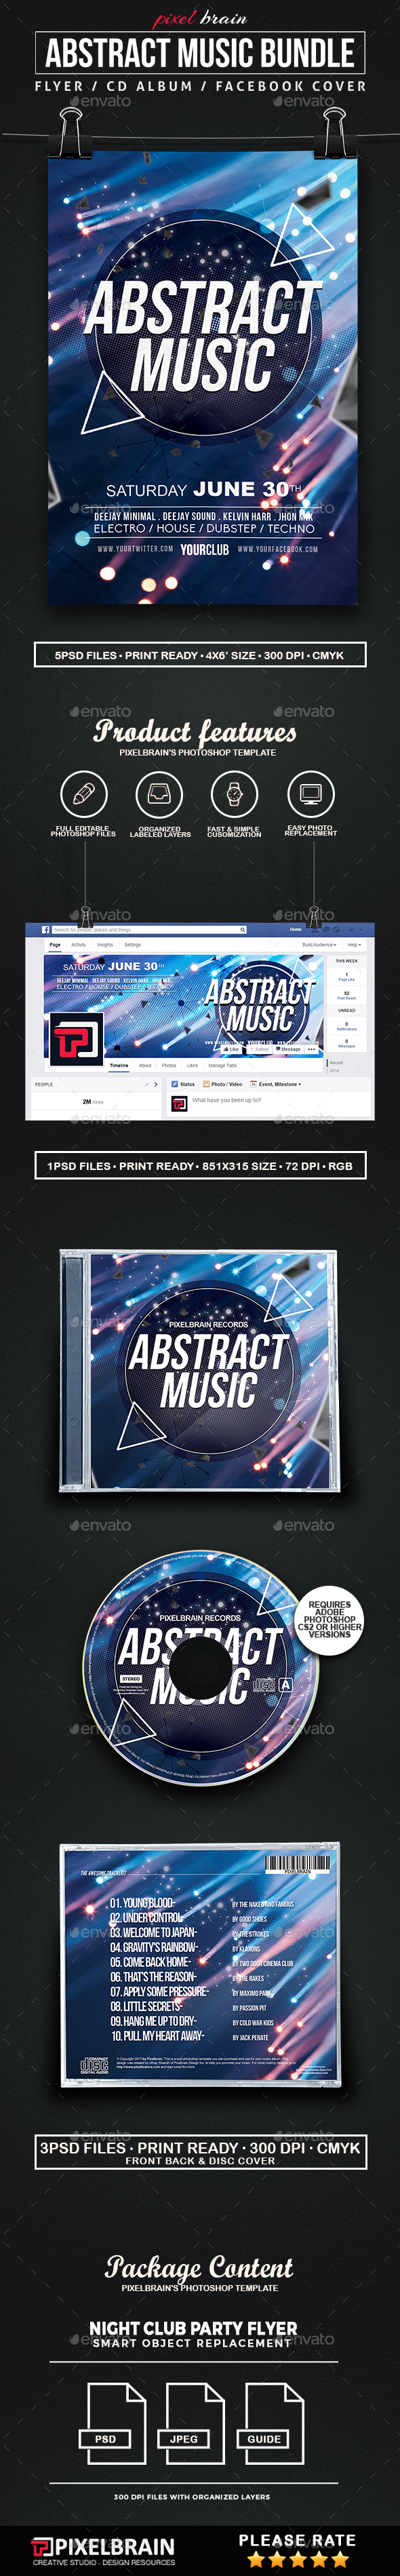 Abstract Music Template Bundle - Print Templates